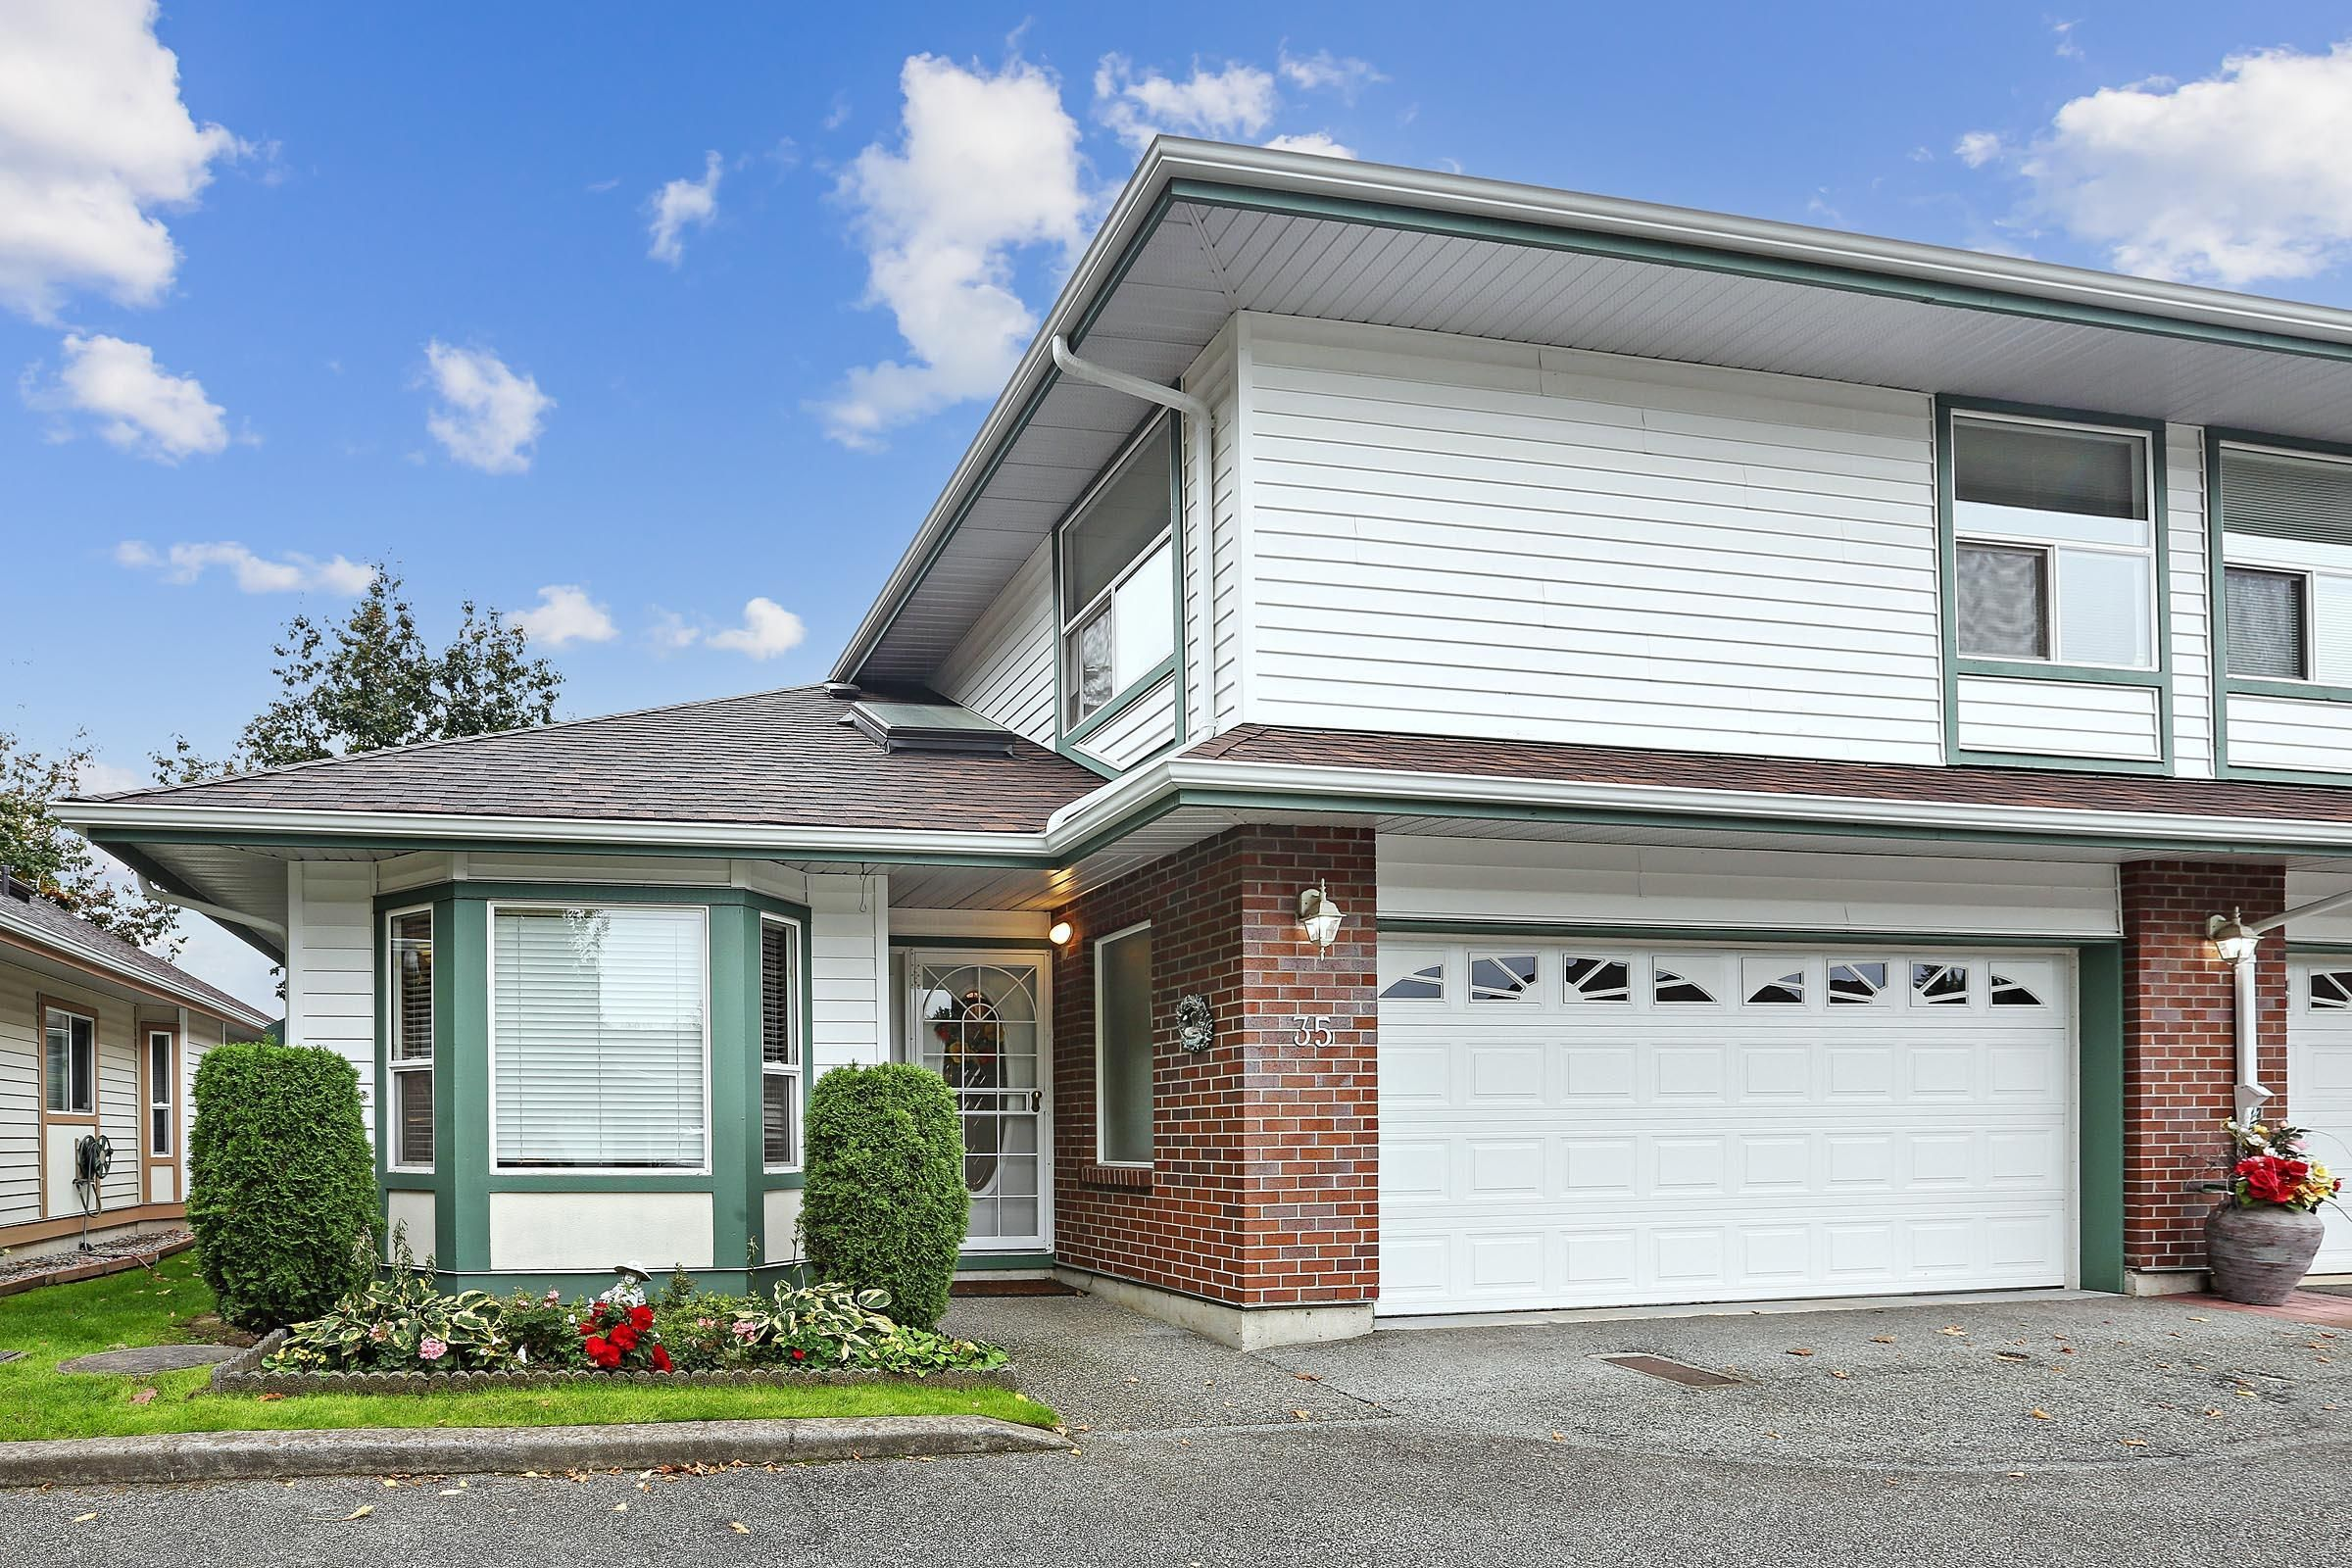 """Main Photo: 35 18939 65 Avenue in Surrey: Cloverdale BC Townhouse for sale in """"GLENWOOD GARDENS"""" (Cloverdale)  : MLS®# R2616293"""